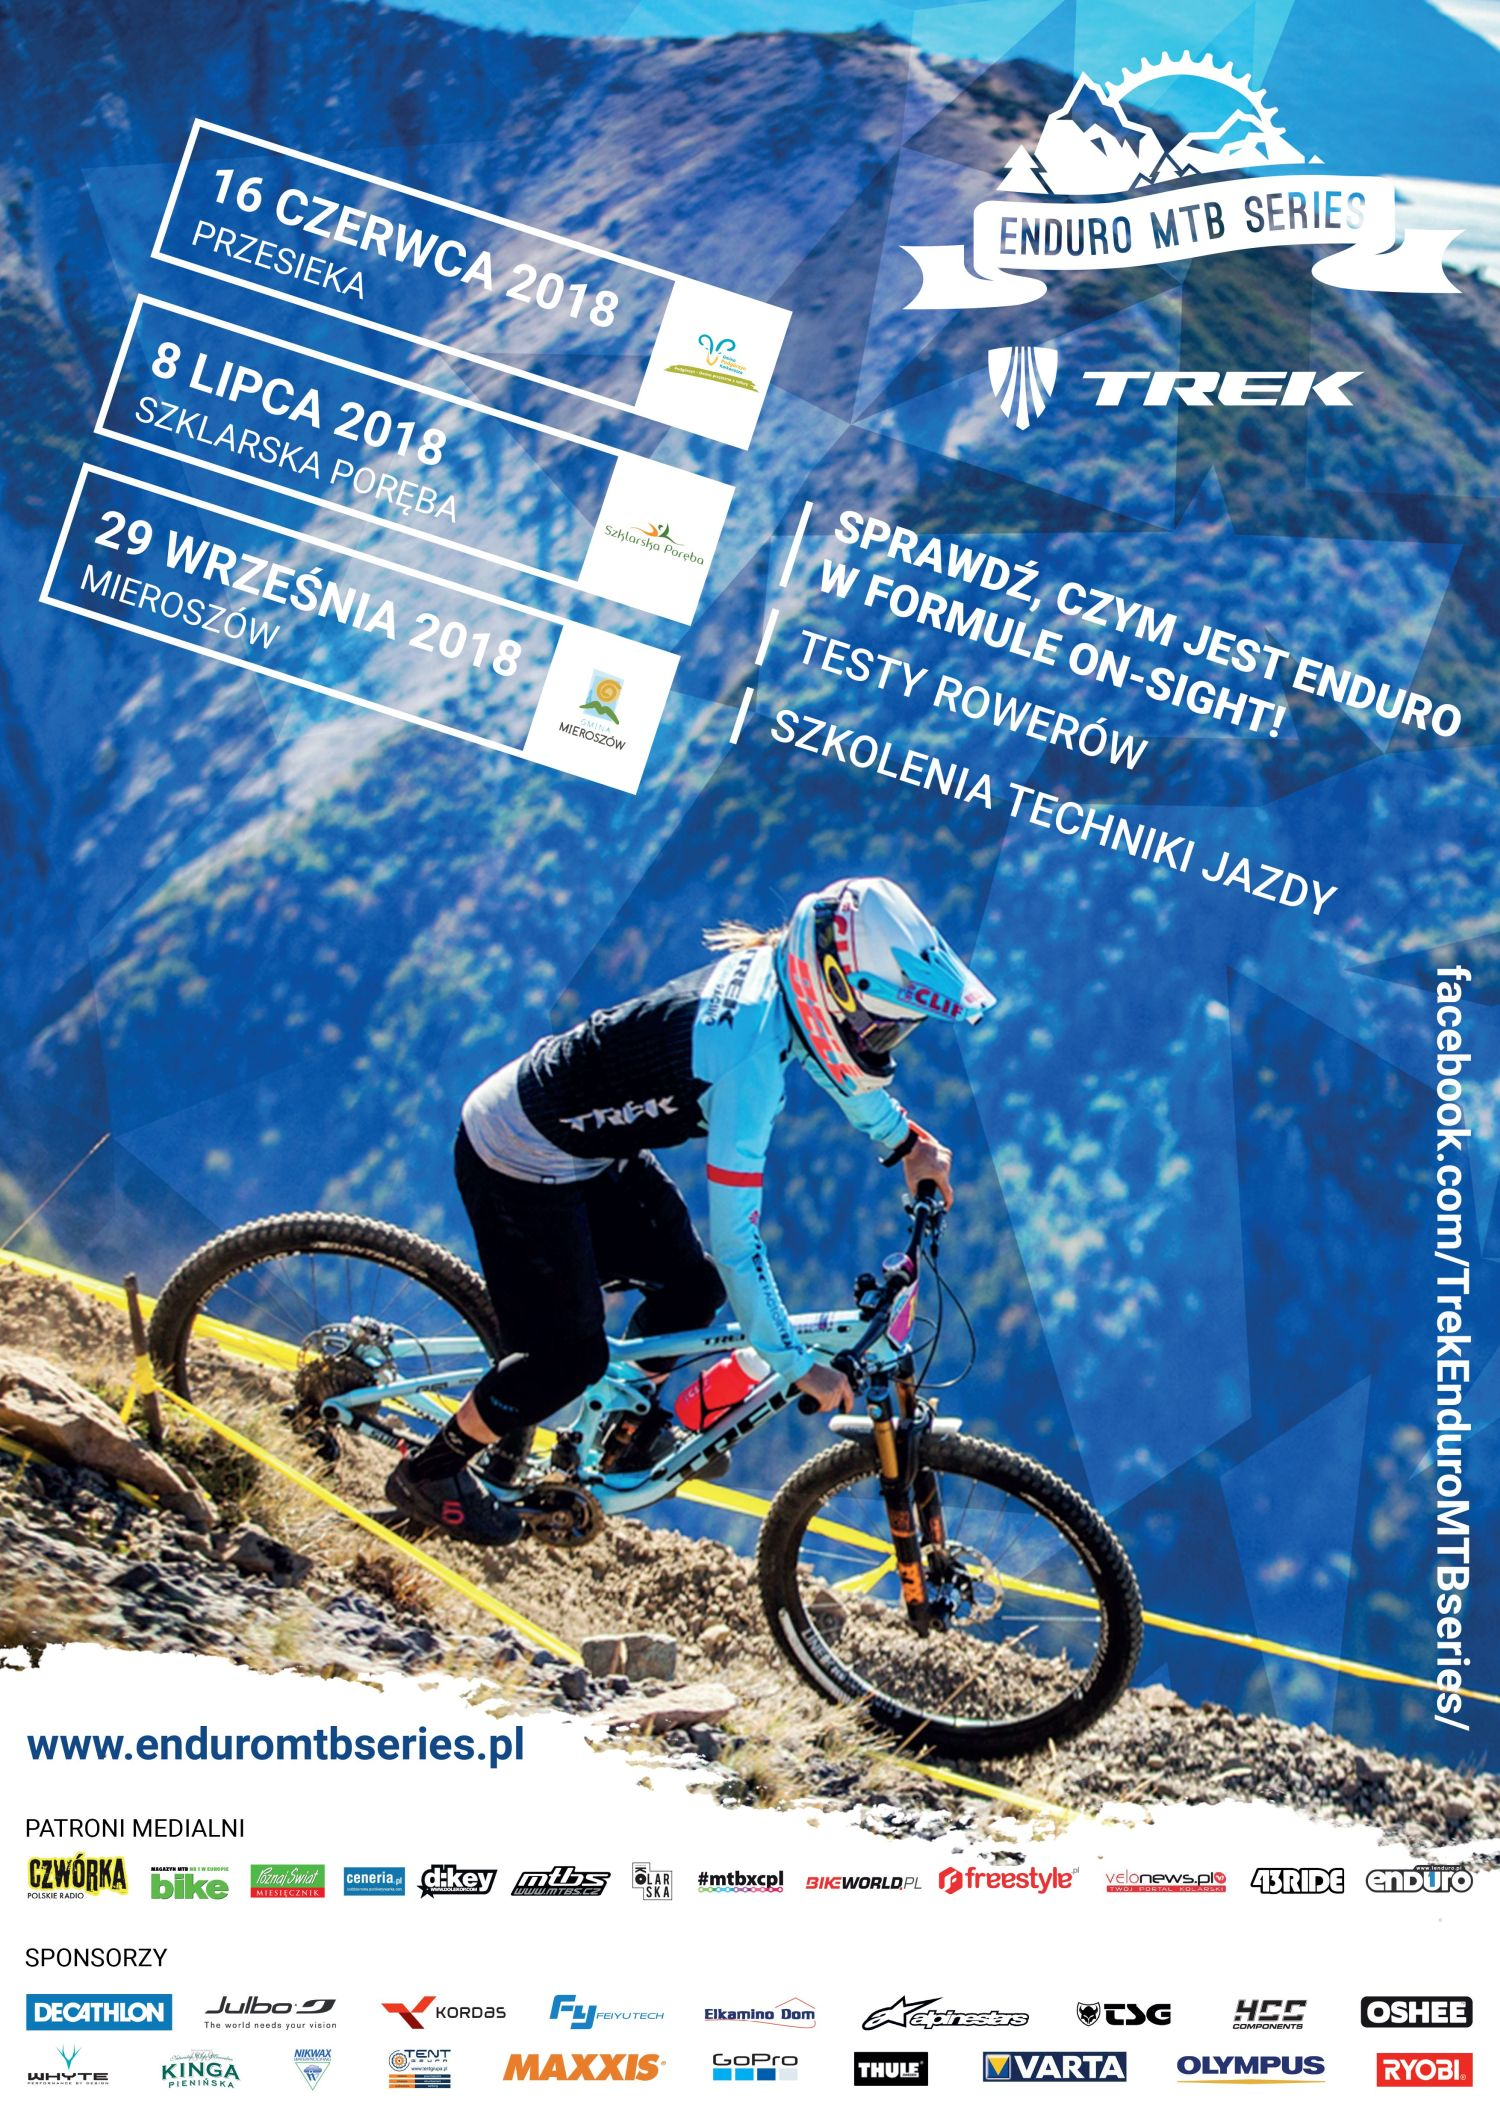 Trek Enduro MTB Series 2018